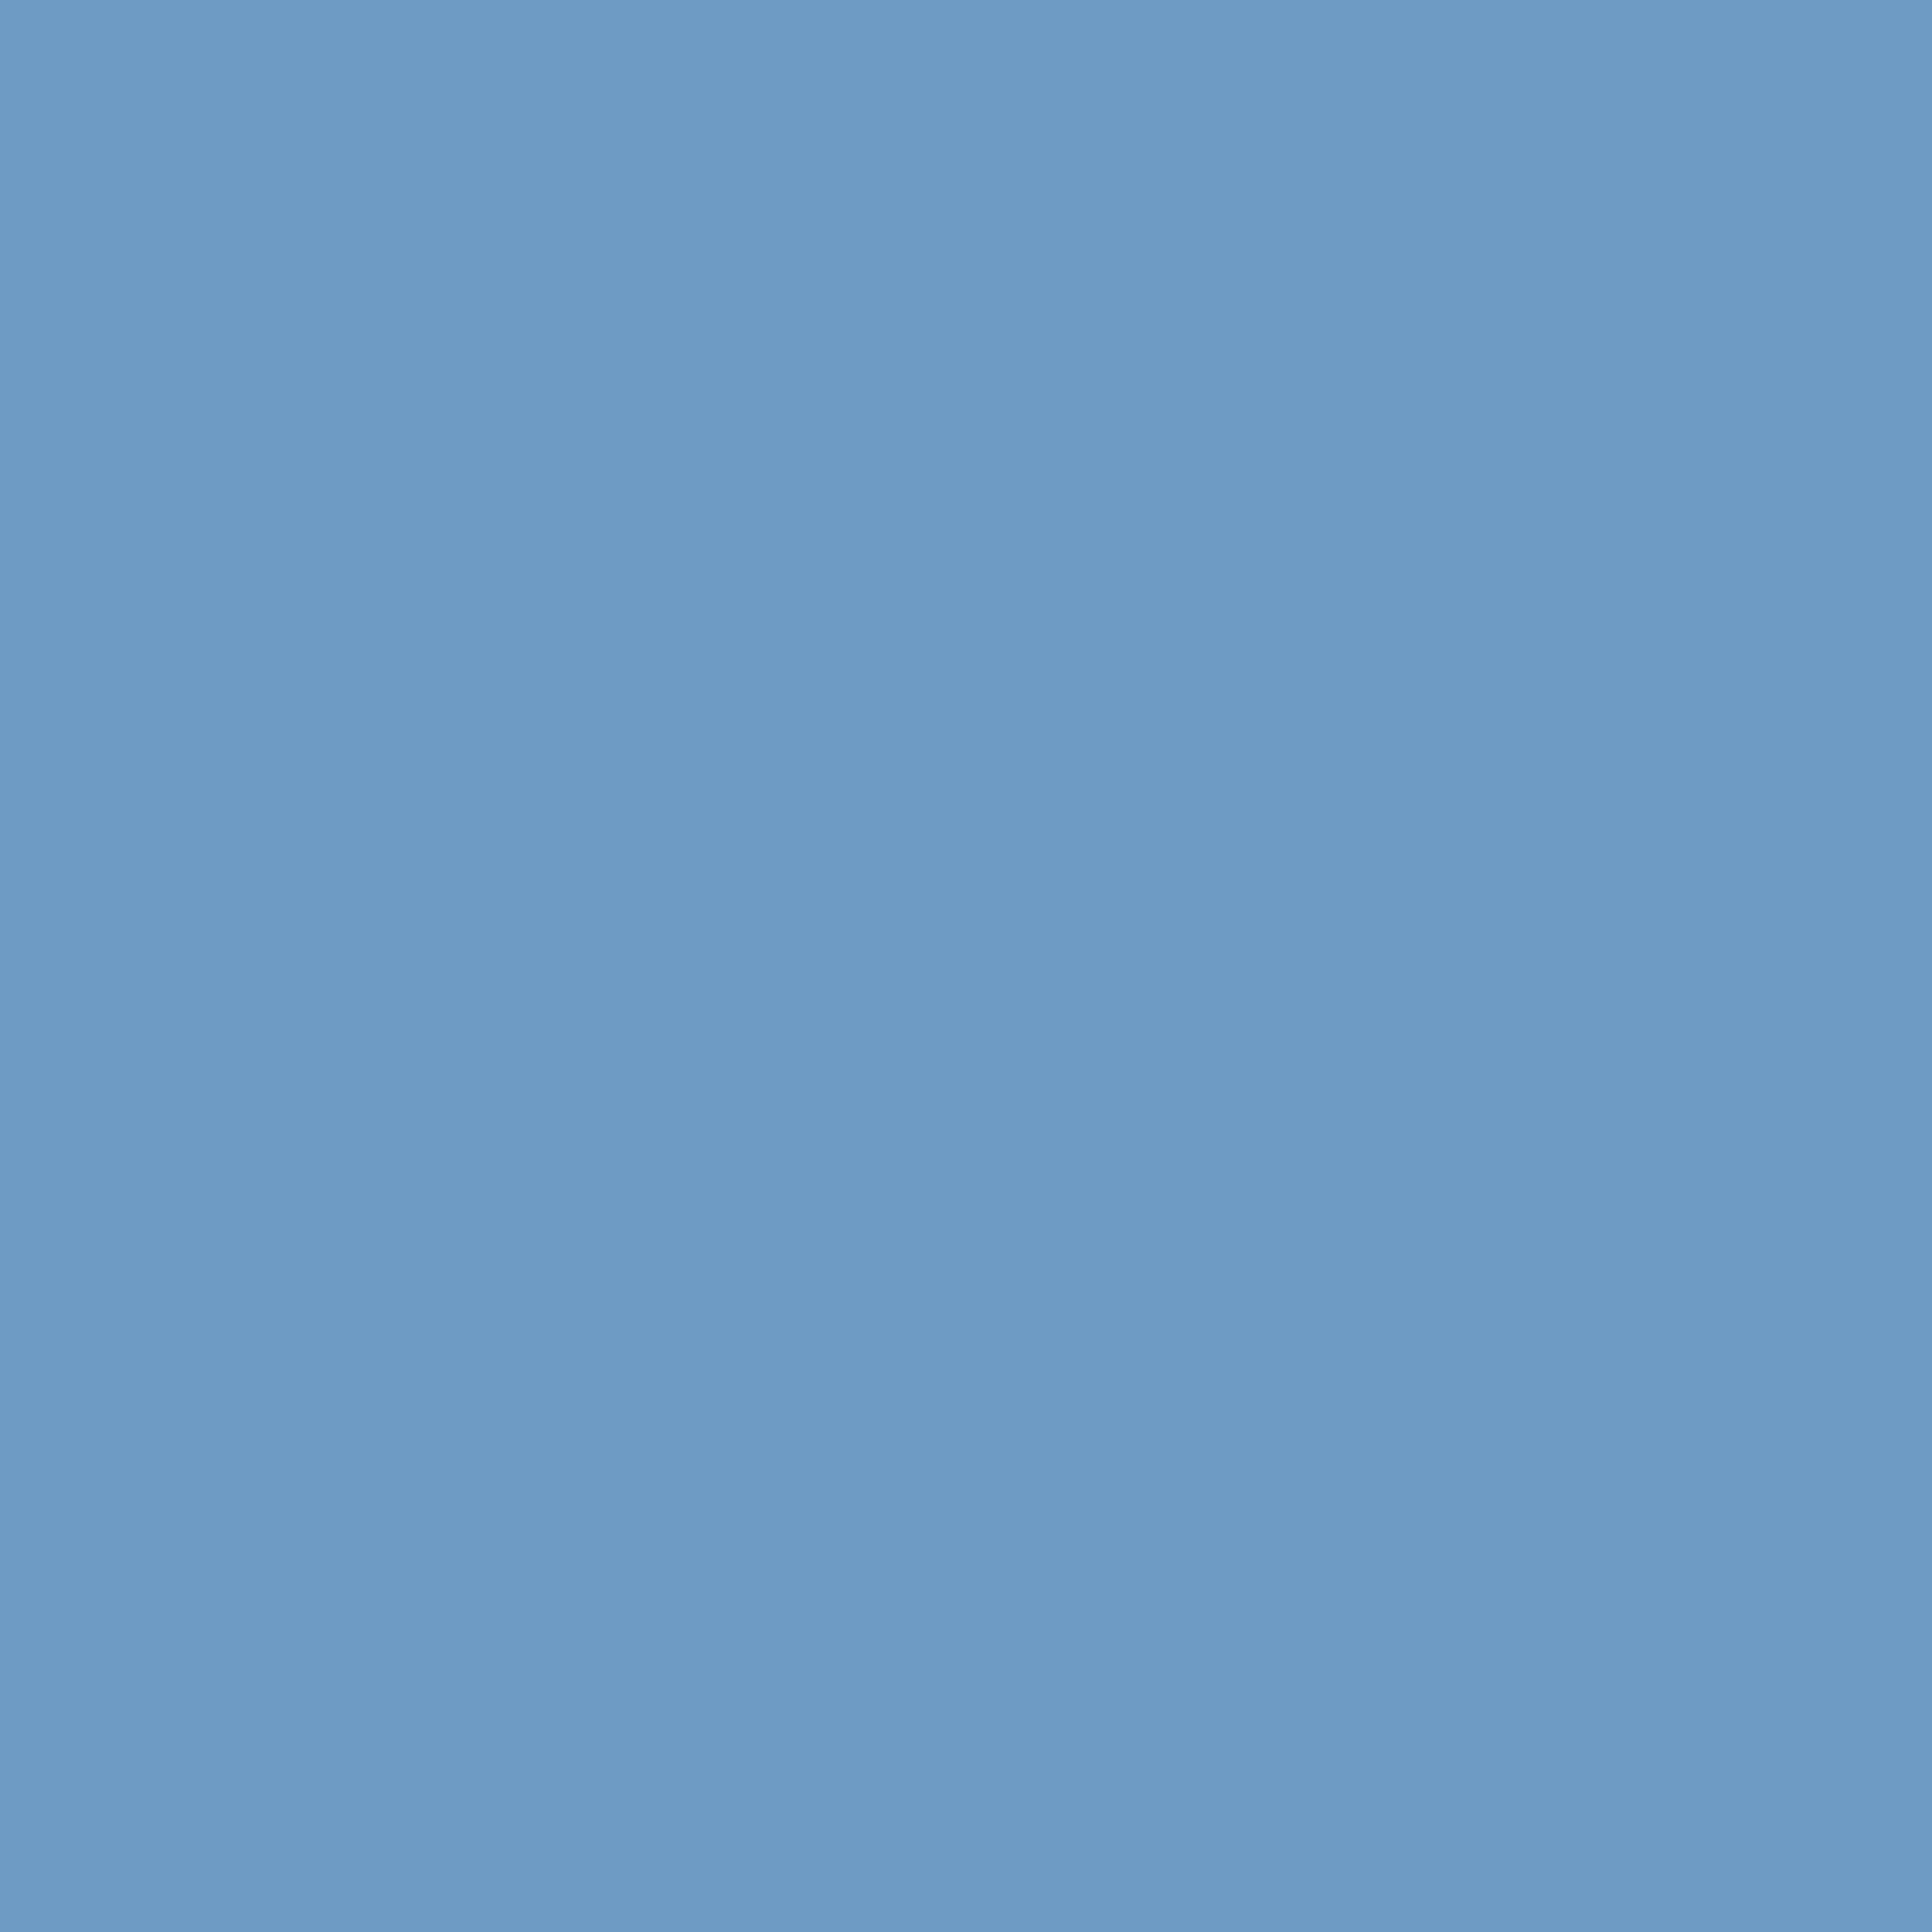 3600x3600 Cerulean Frost Solid Color Background